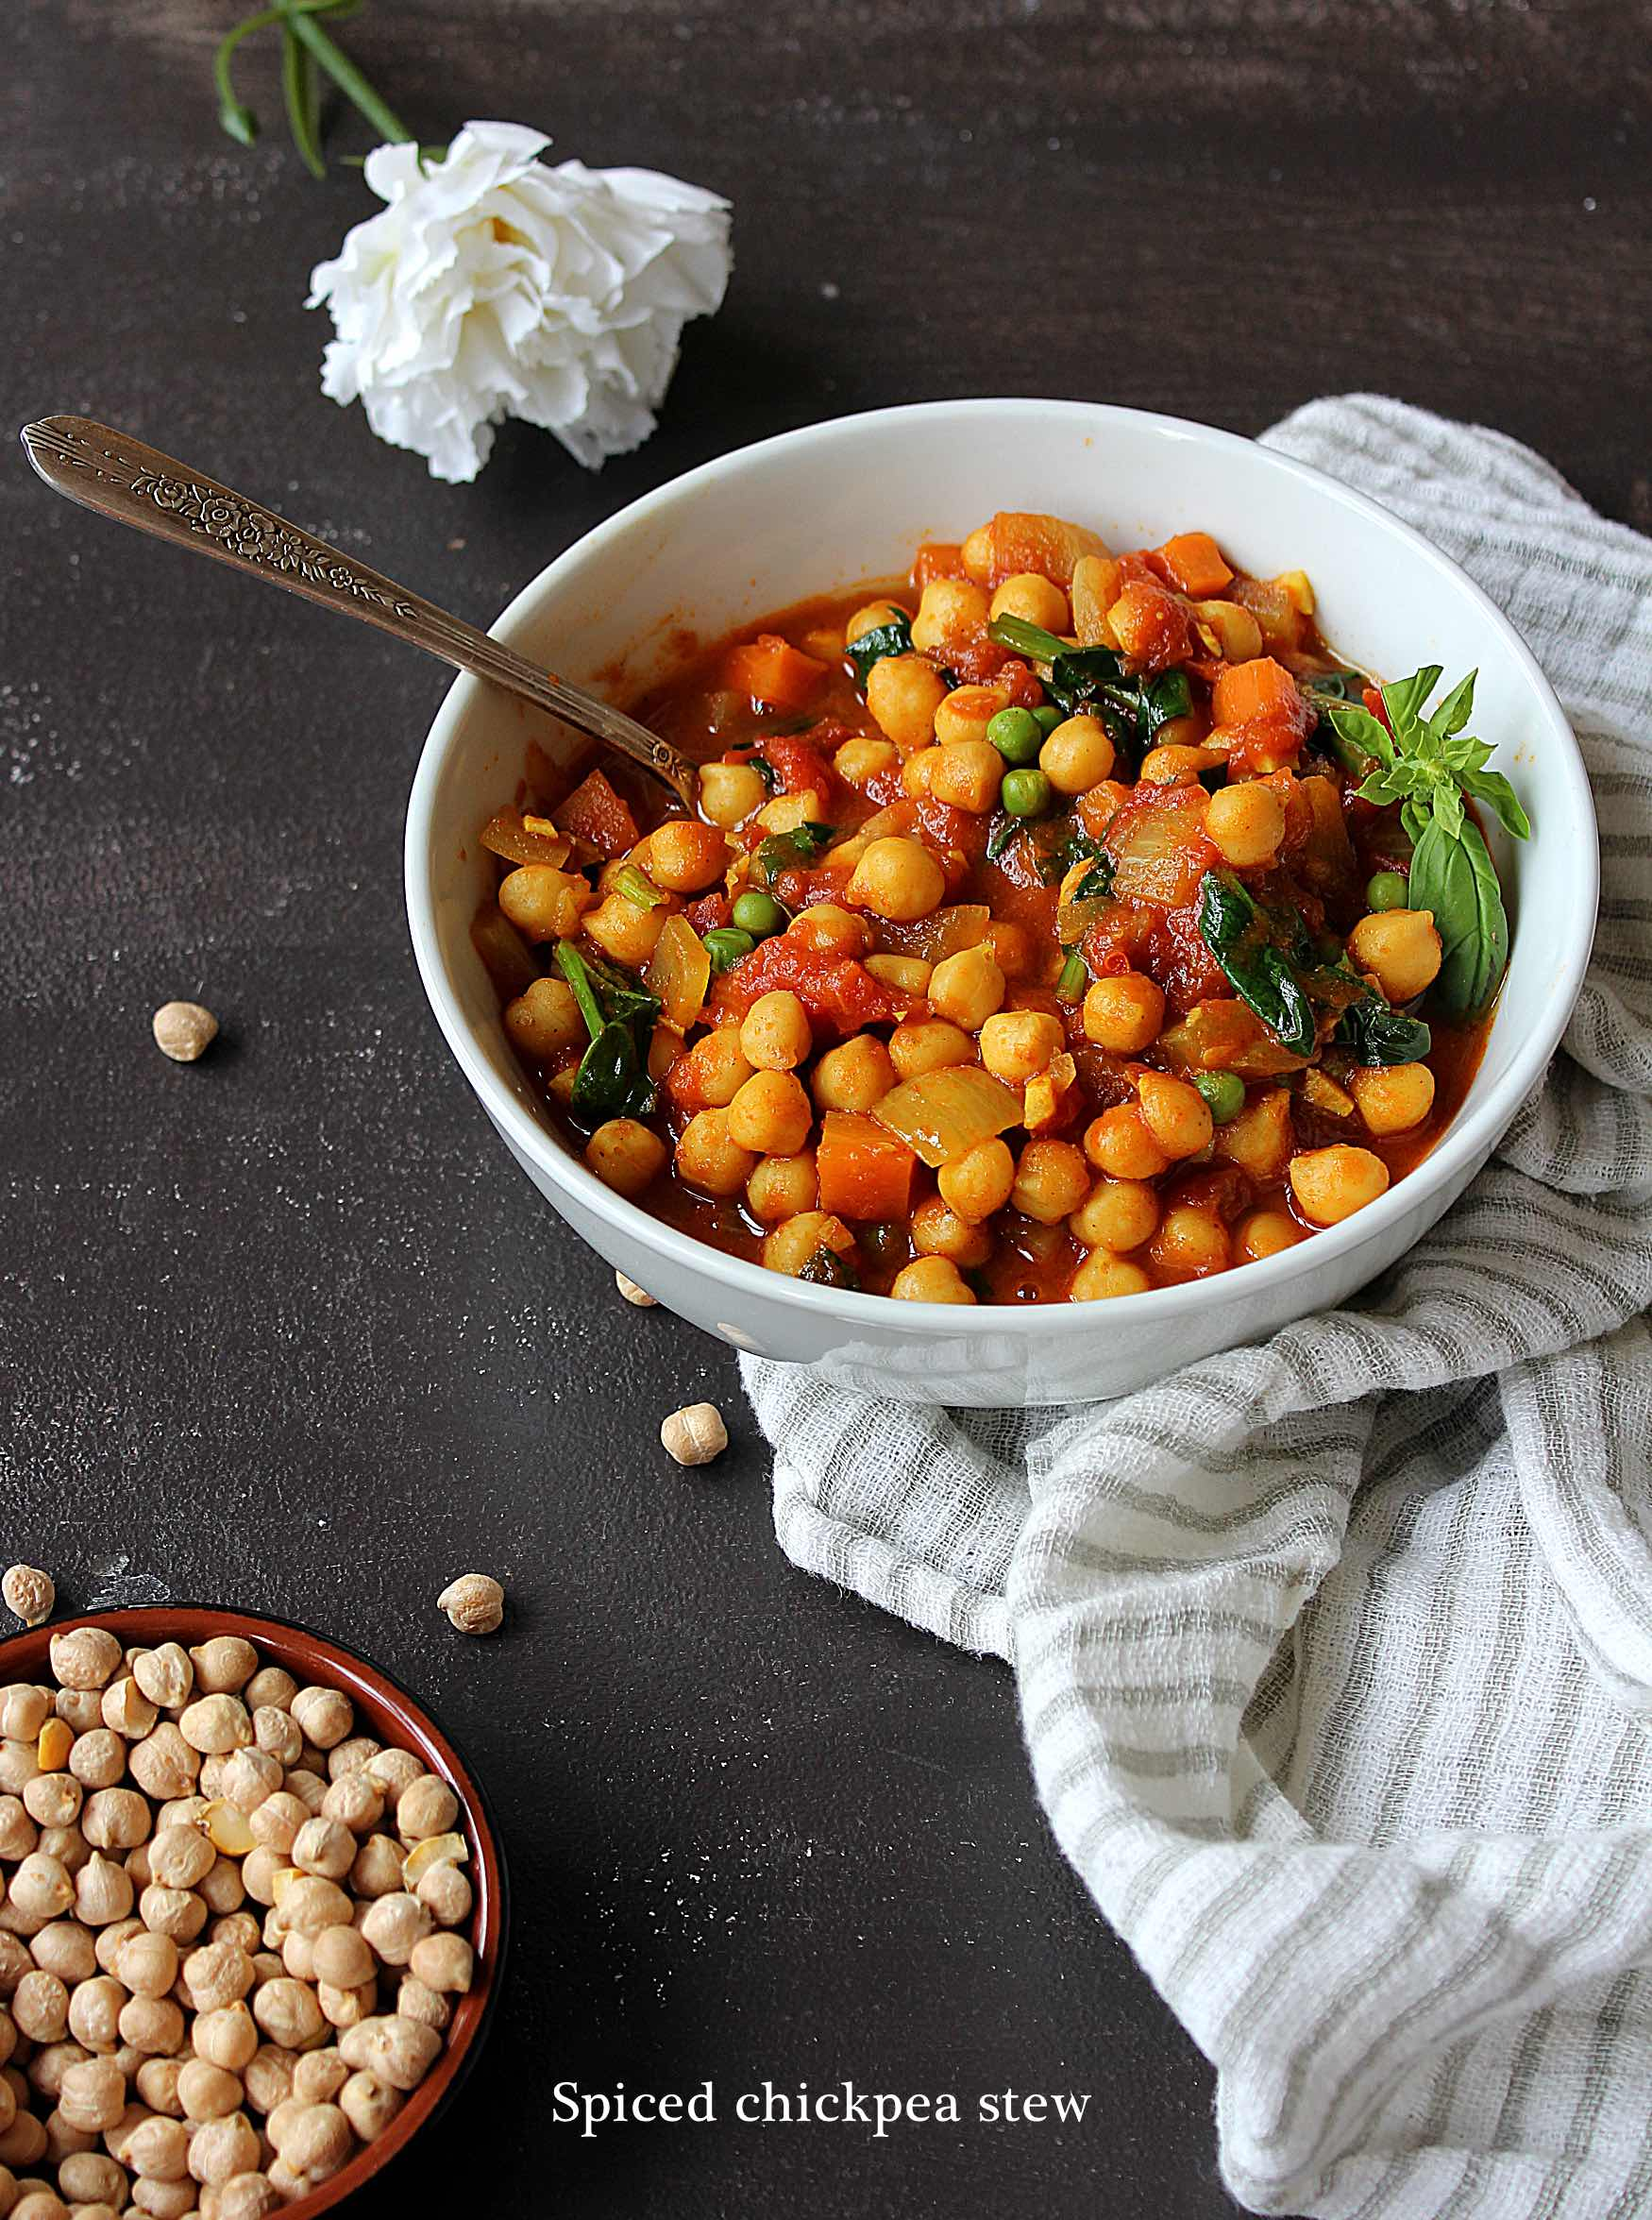 Spiced chickpea stew